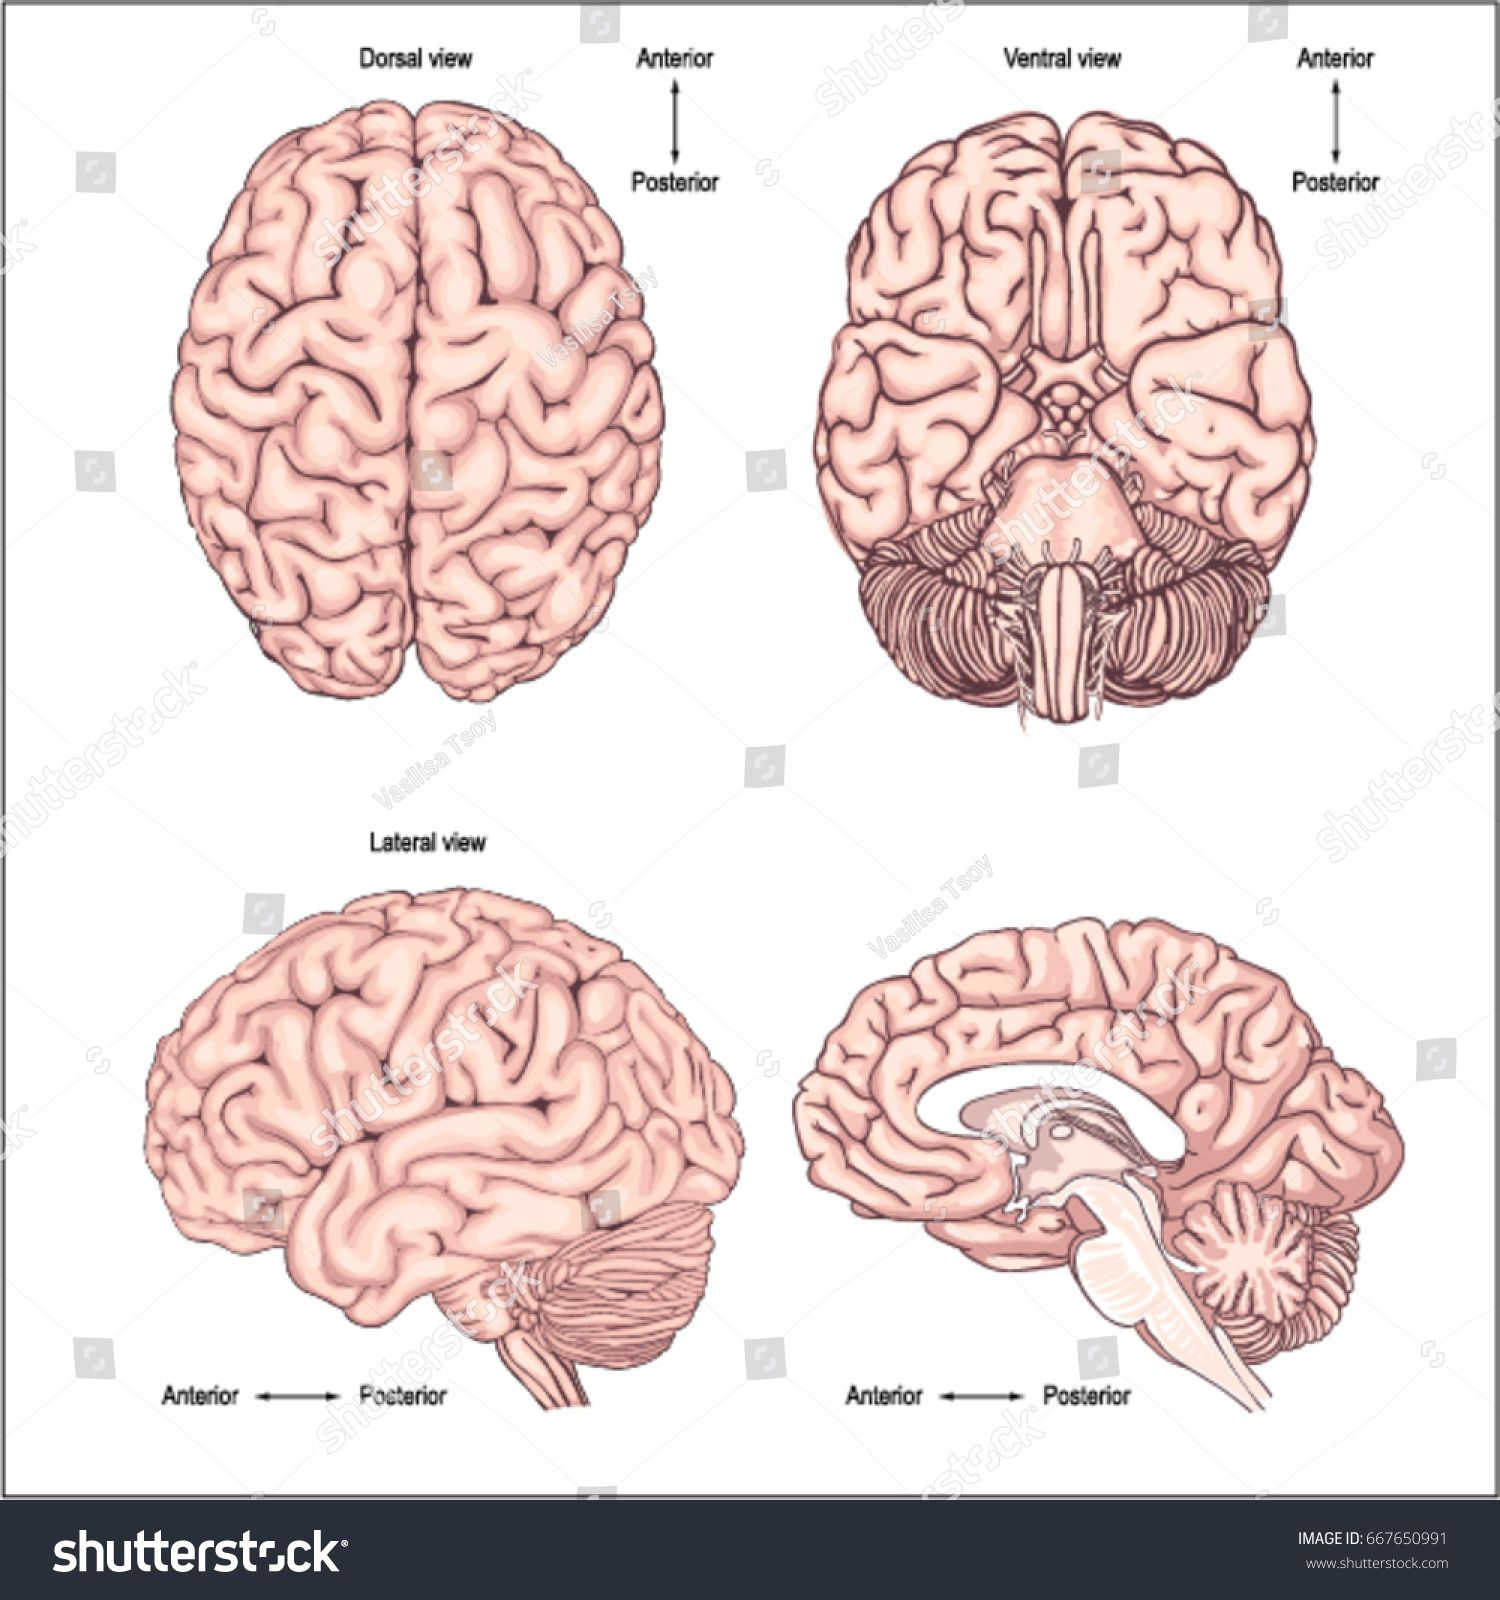 Diagram Of The Brain From The Top Side Front And Back Realistic Image Of The Brain Anatomy Of The Brain Poste Brain Anatomy Anatomy Back Human Brain Anatomy